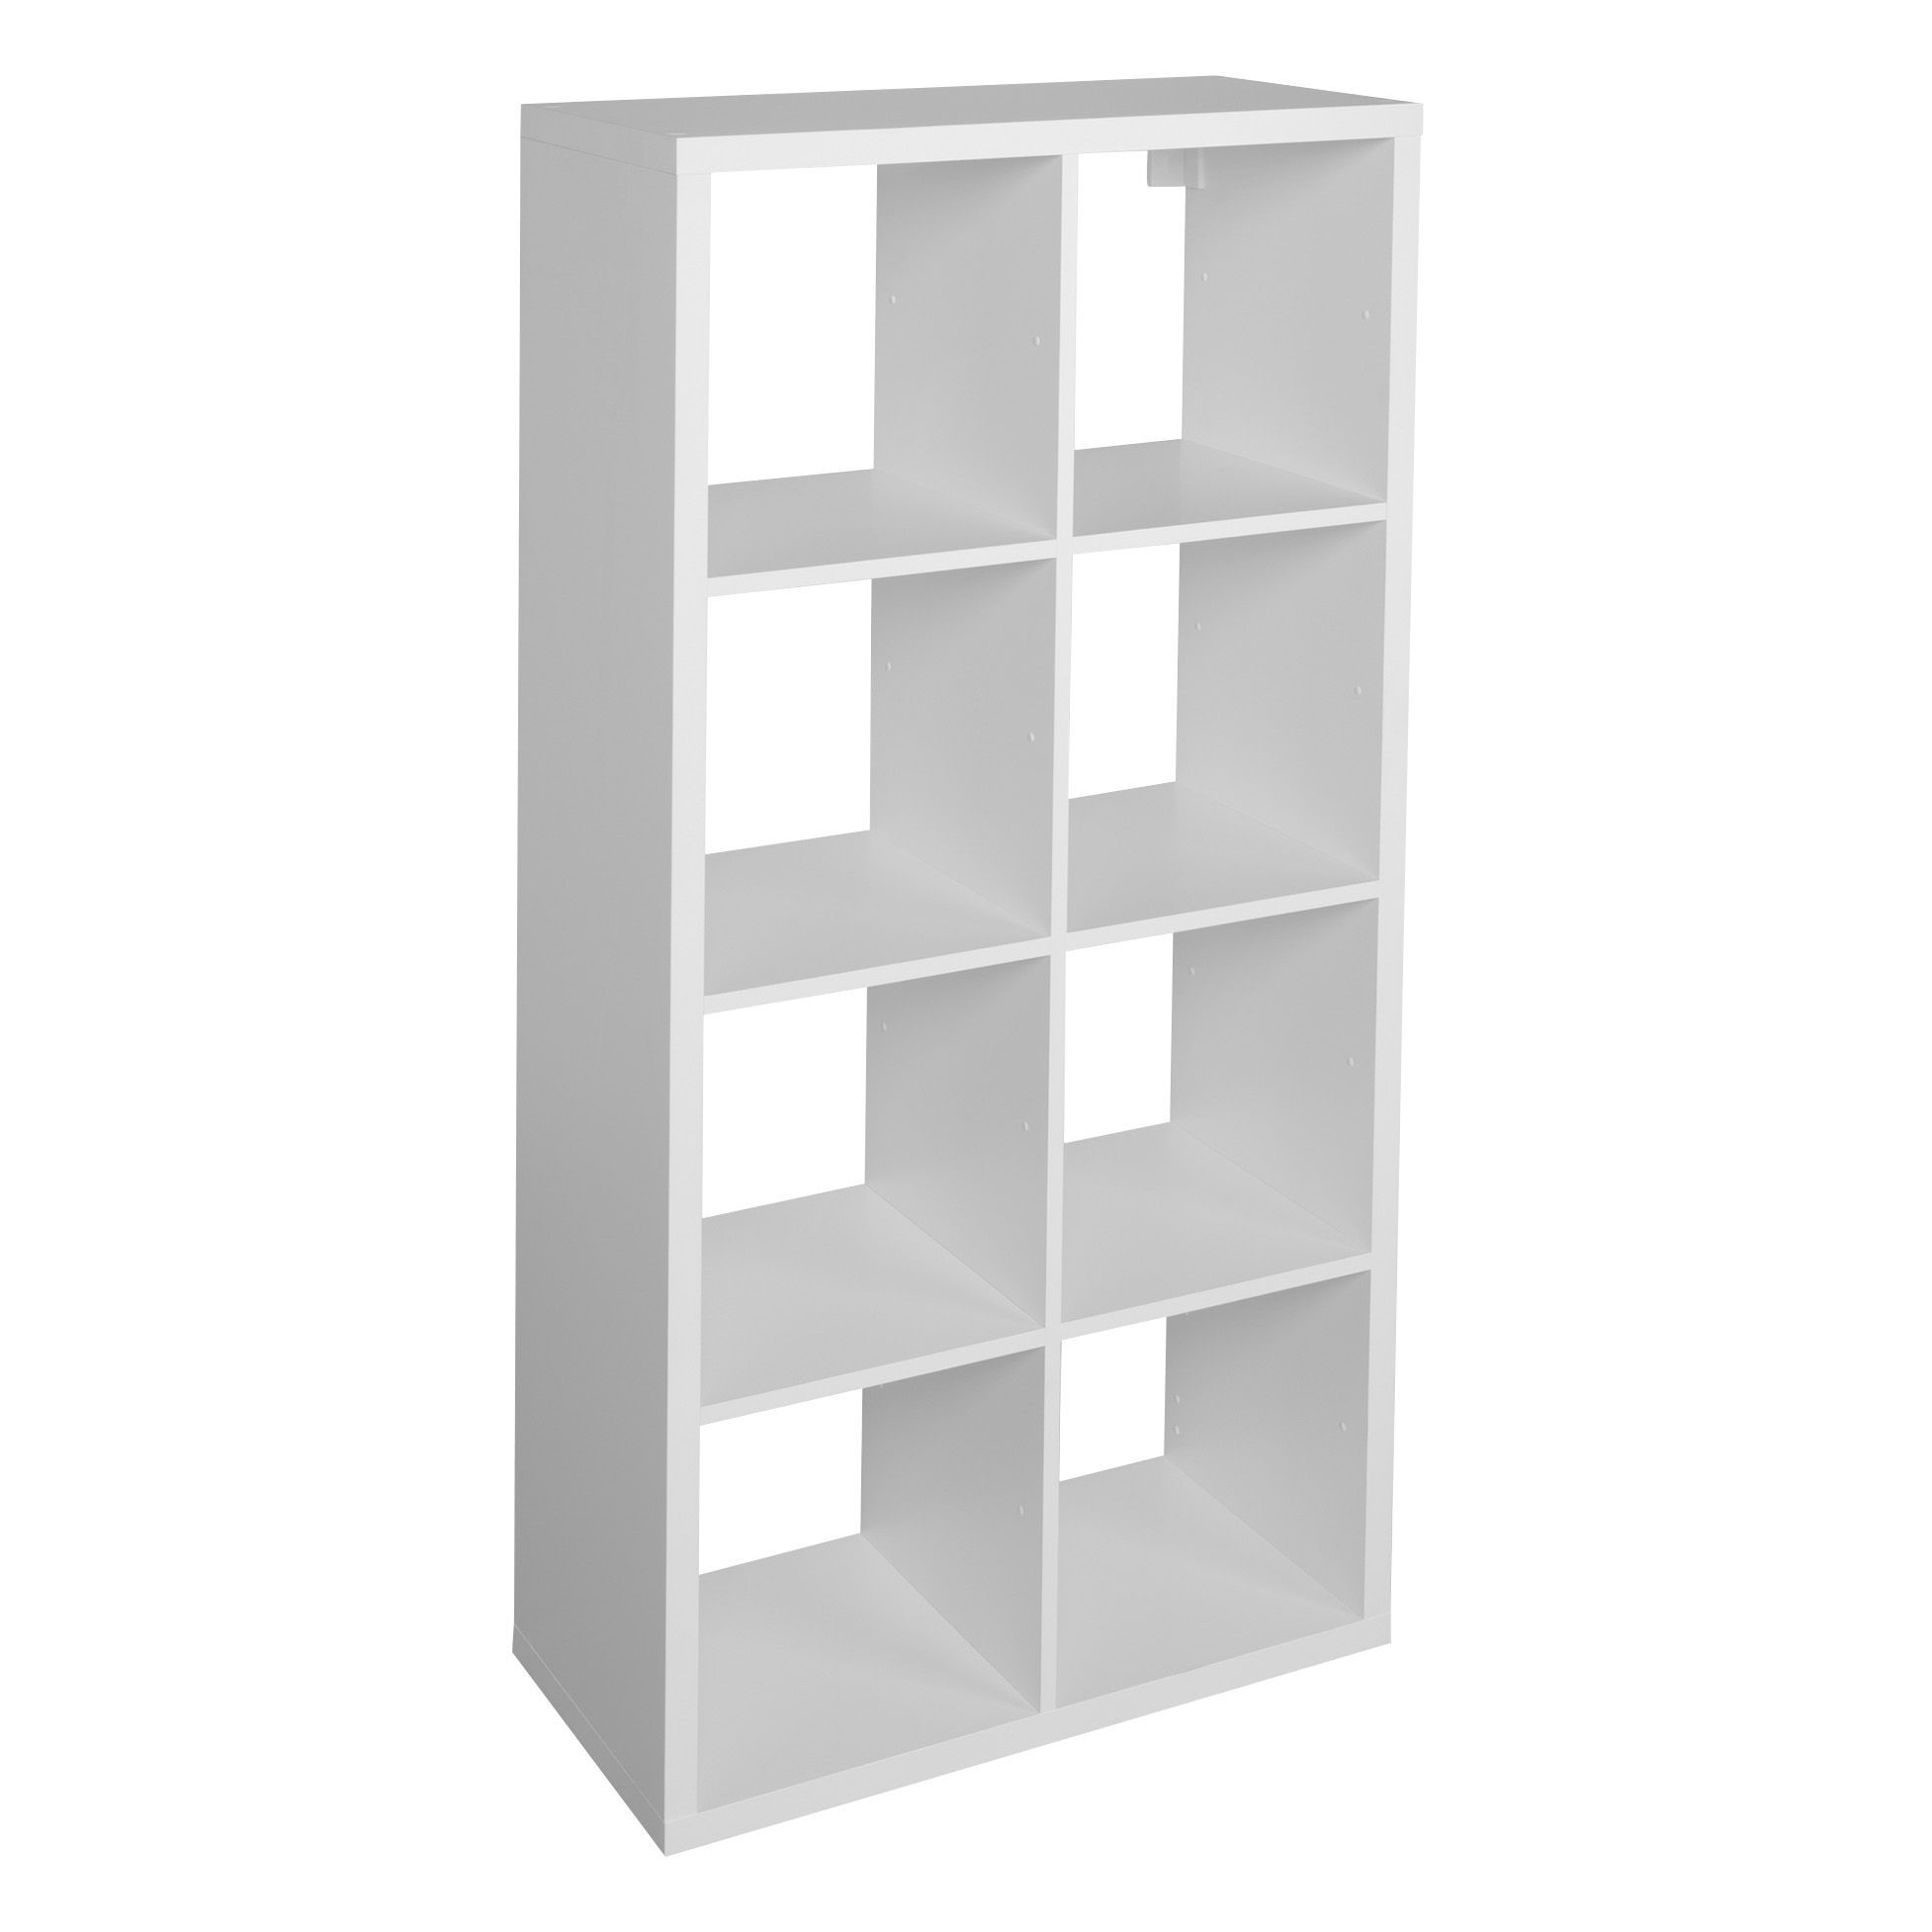 Form Miit White 8 Cube Shelving Unit H 1420mm W 740mm Departments Diy At B Q